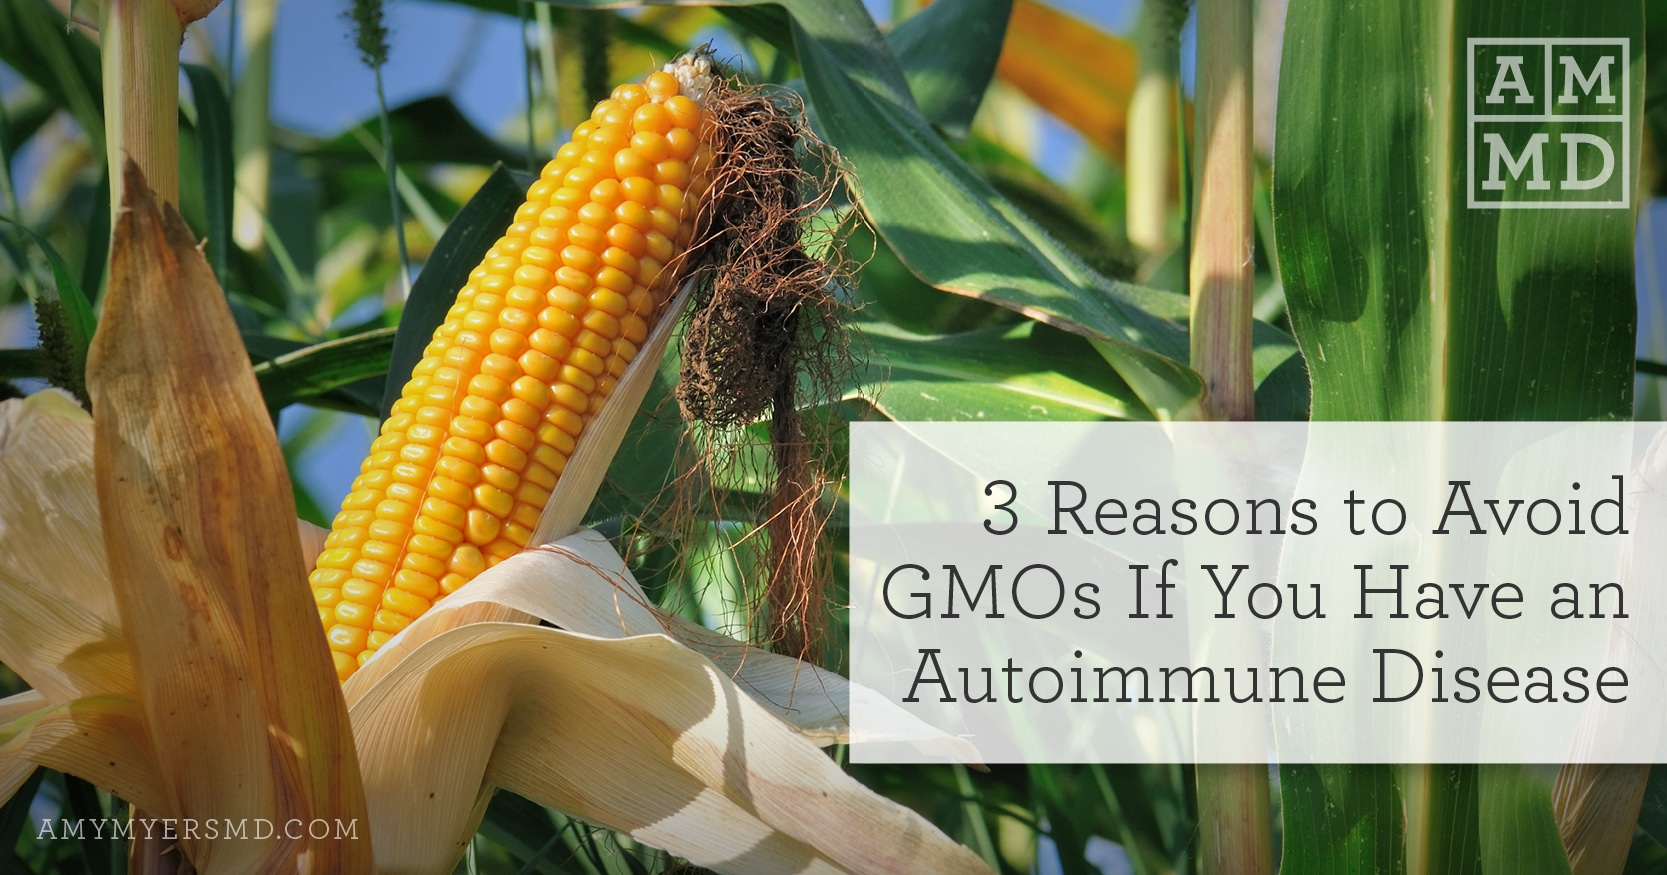 3 Reasons to Avoid GMOs If You Have an Autoimmune Disease - Corn on the Cob - Featured Image - Amy Myers MD